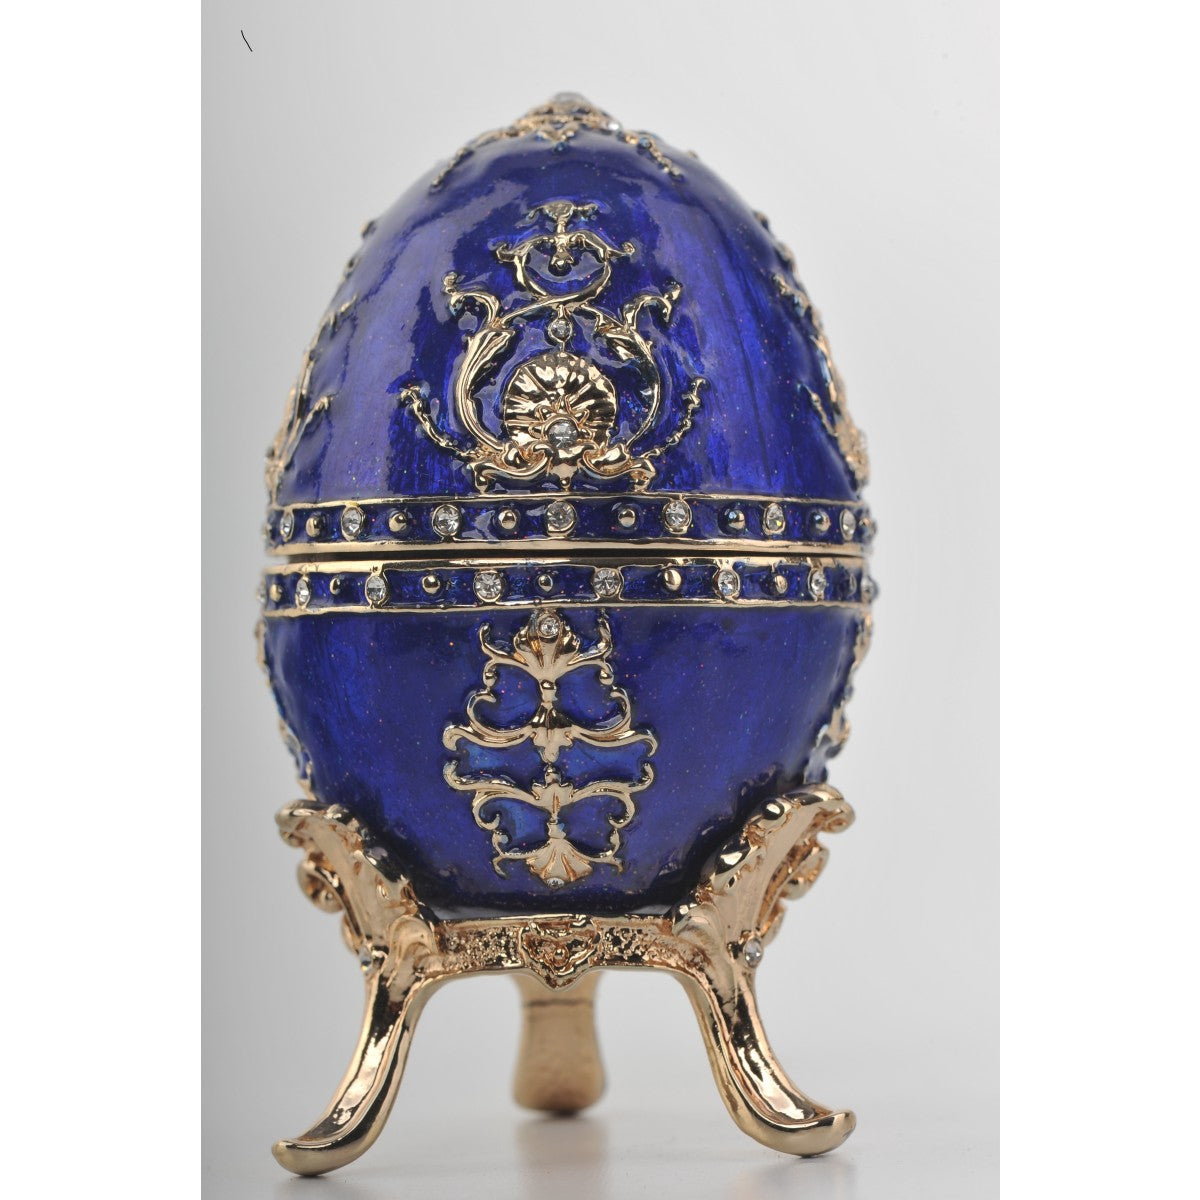 Blue and gold Faberge egg by Keren Kopal